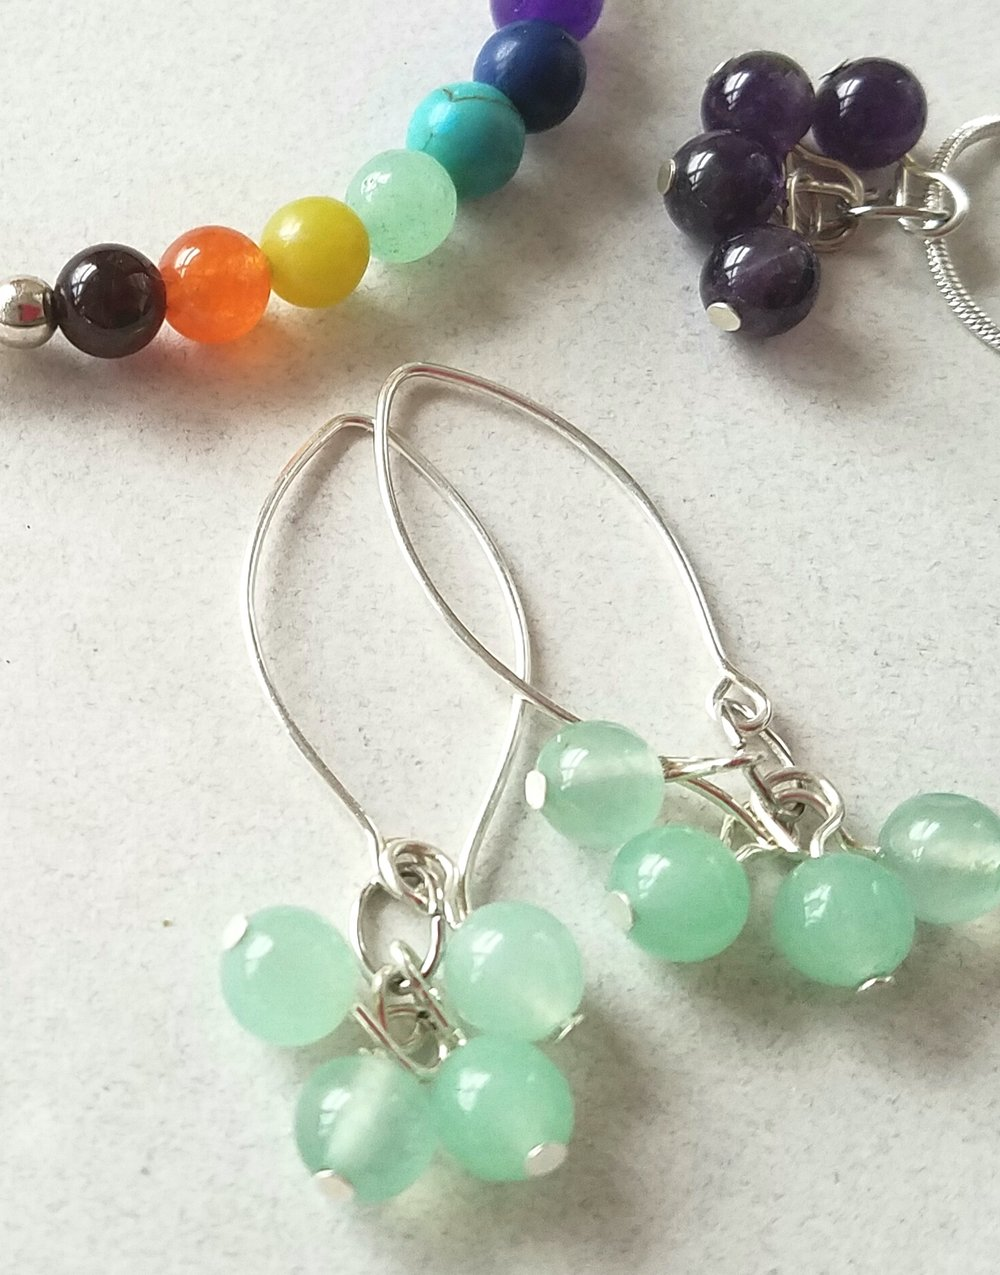 chakra earrings.jpg